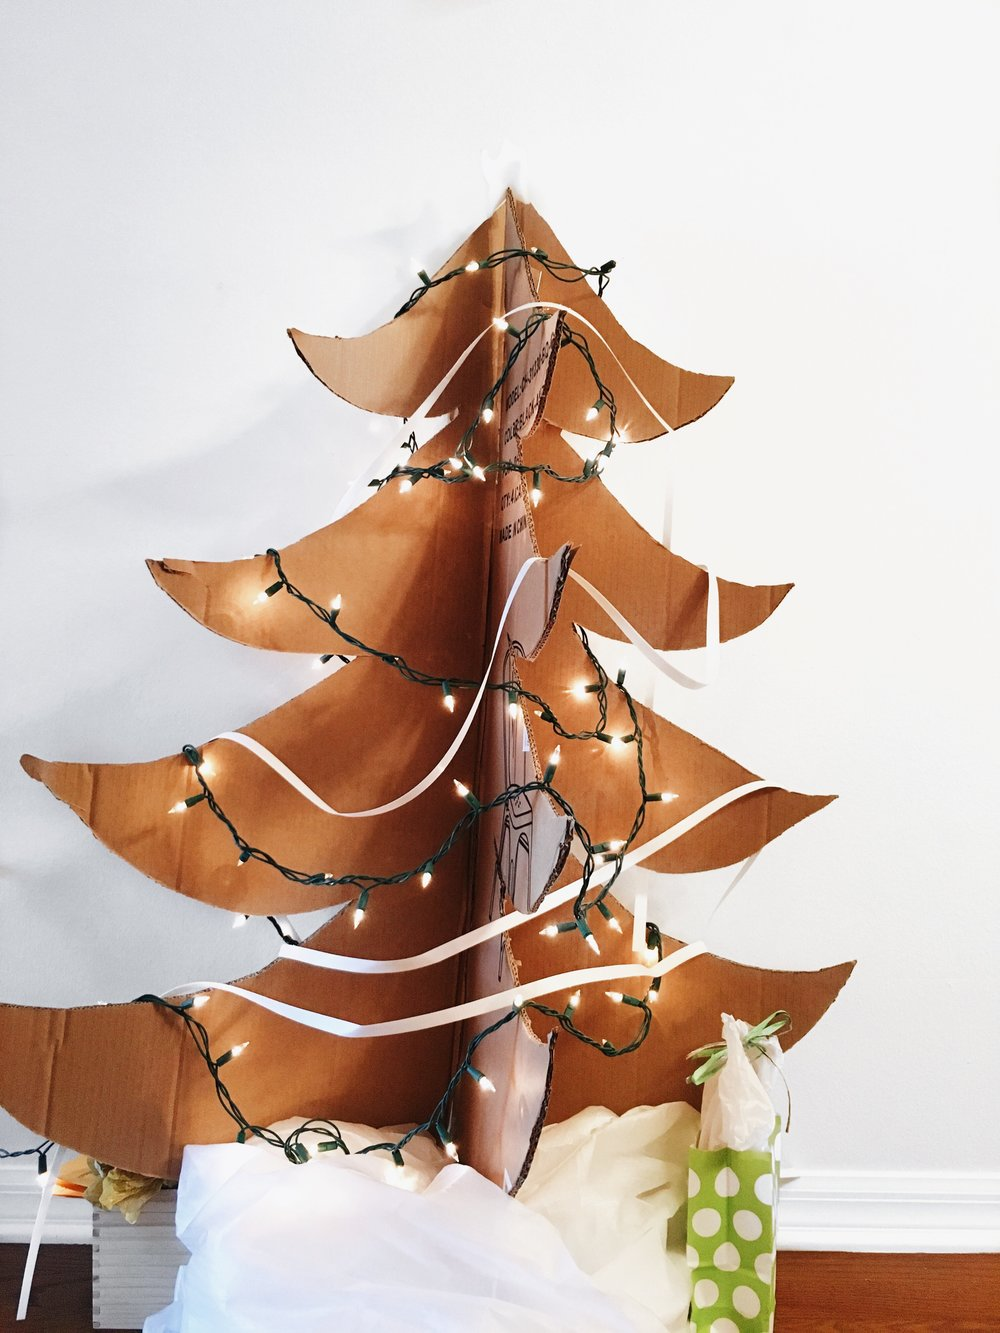 My eco-friendly cardboard Christmas tree. Made and decorated with used furniture packaging.